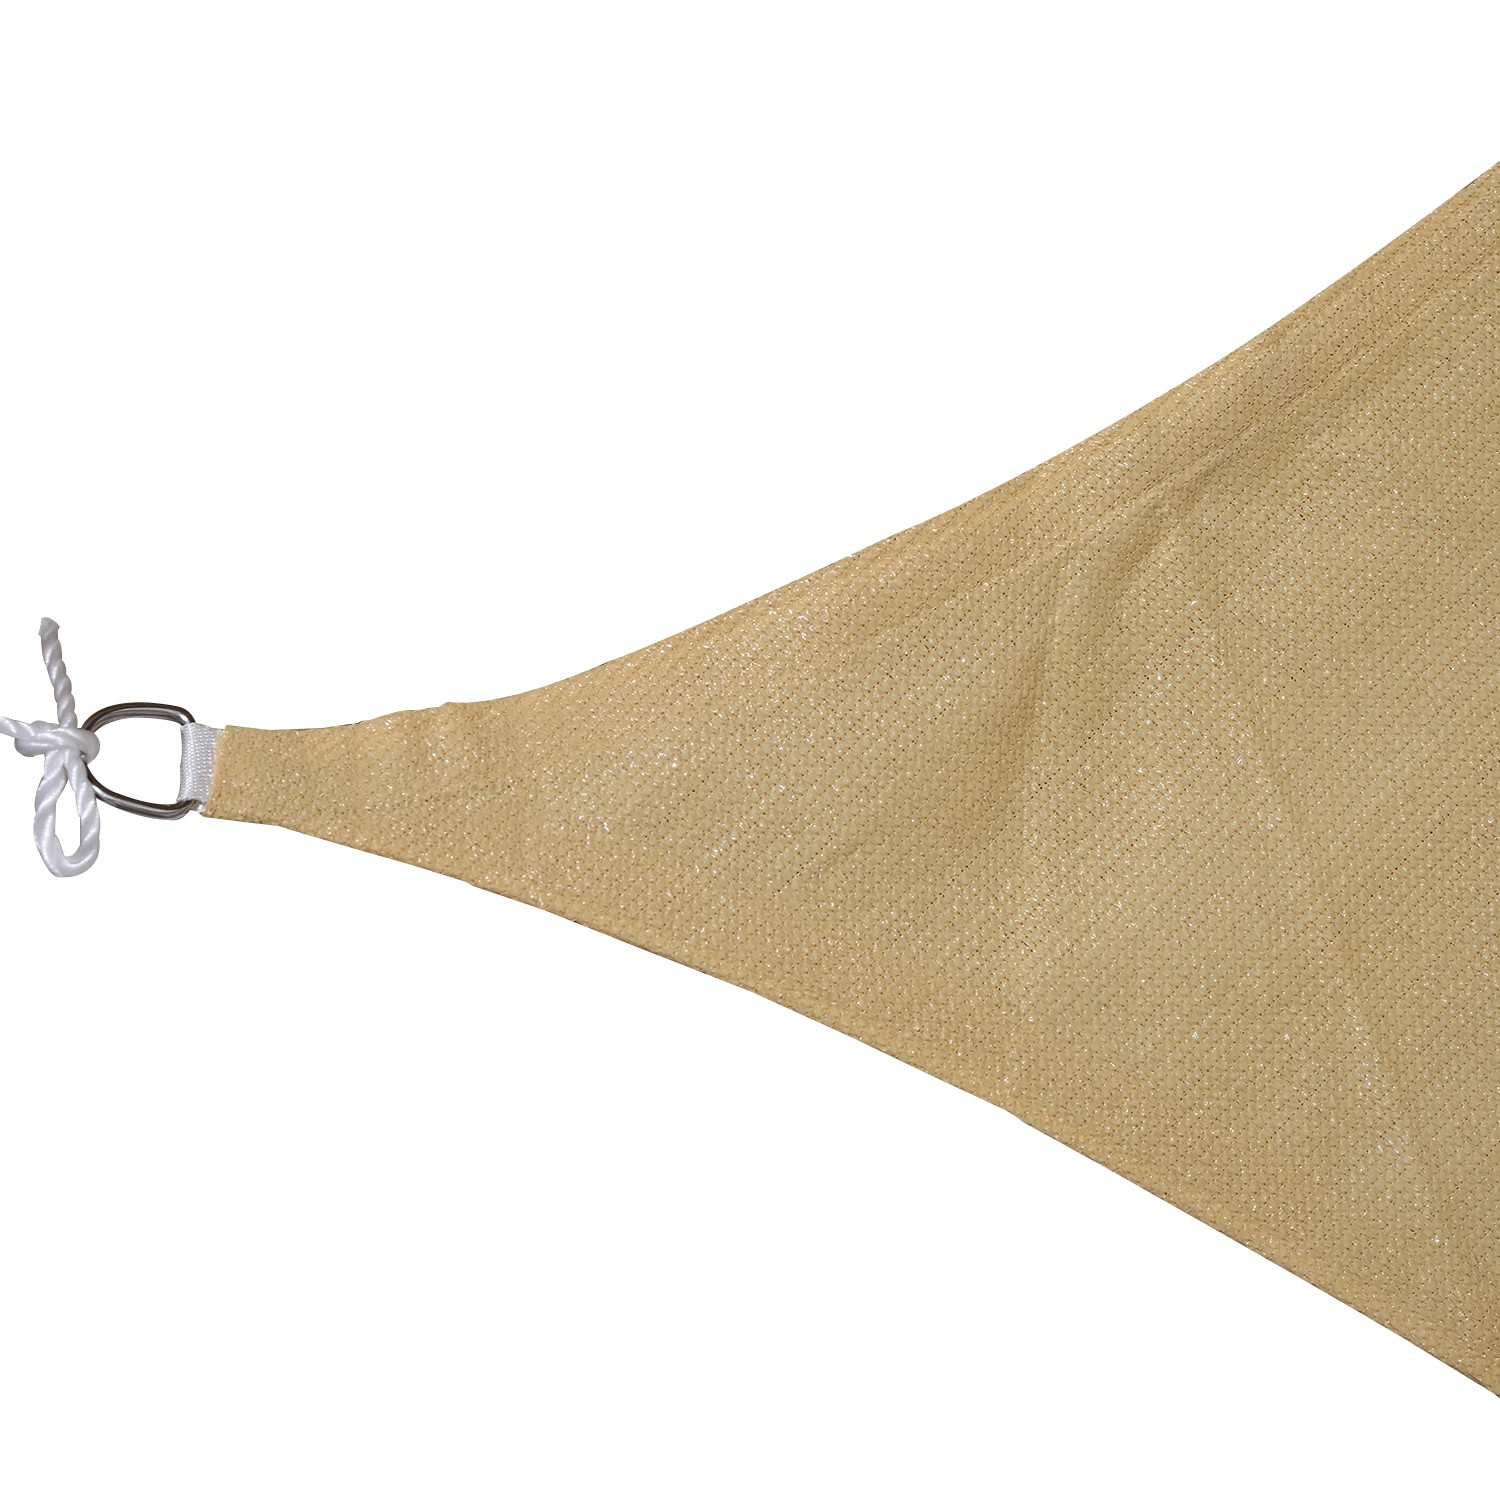 Sun-Shade-Sail-UV-Top-Cover-Outdoor-Canopy-Patio-Triangle-Square-Rectangle-w-Bag thumbnail 12